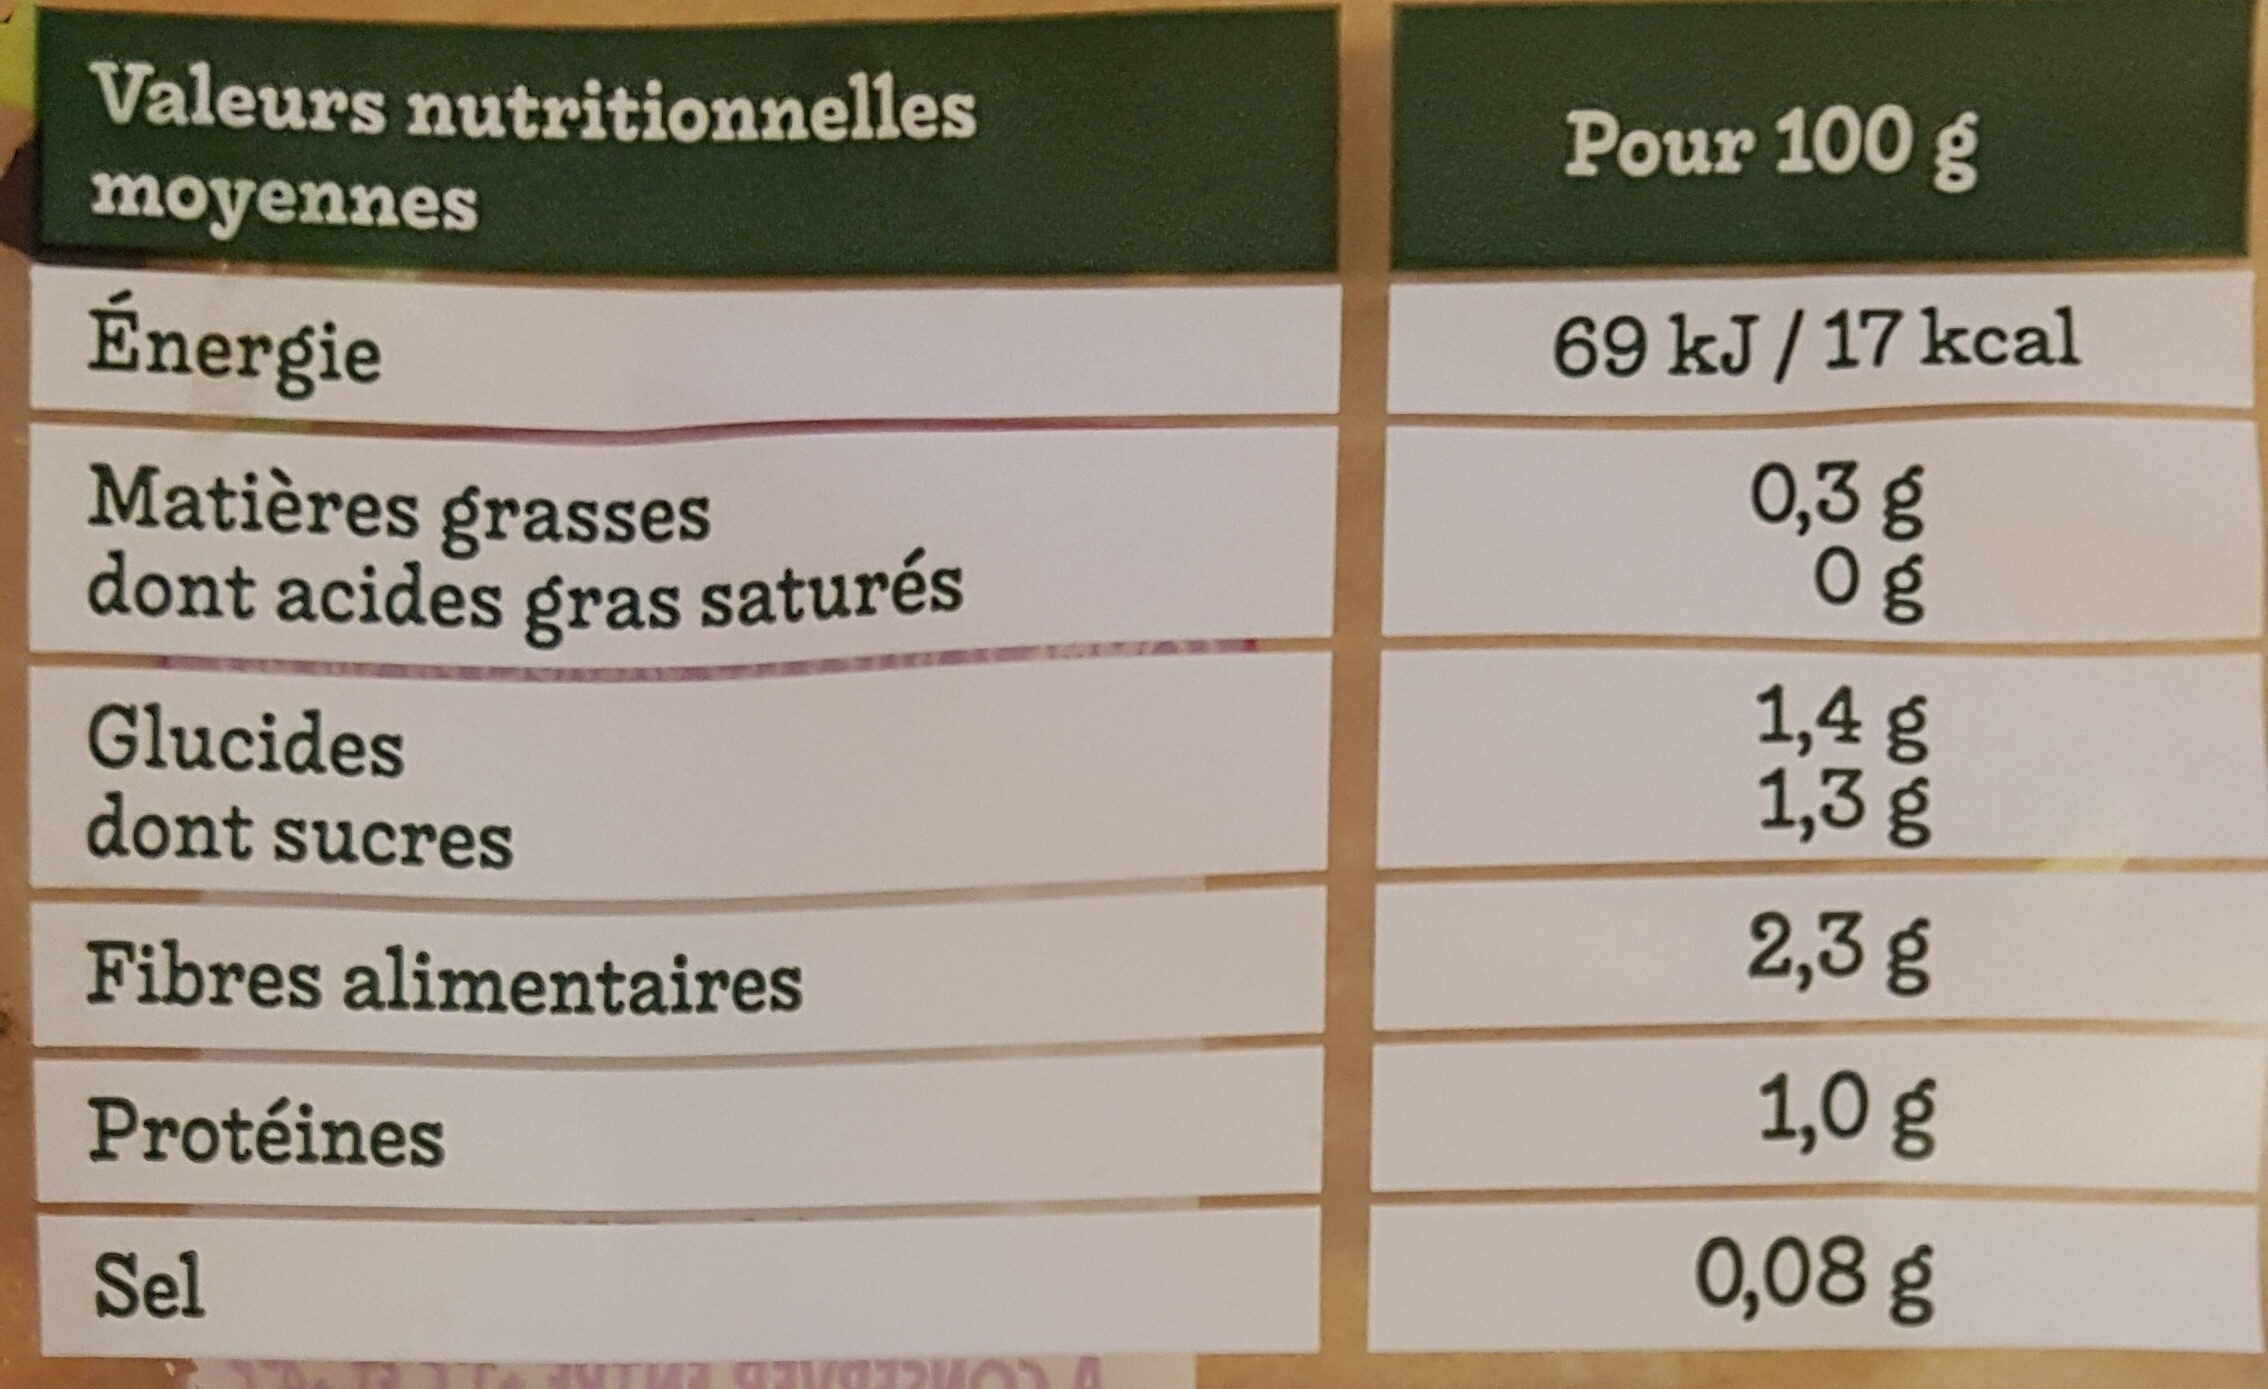 Mélange gourmand - Nutrition facts